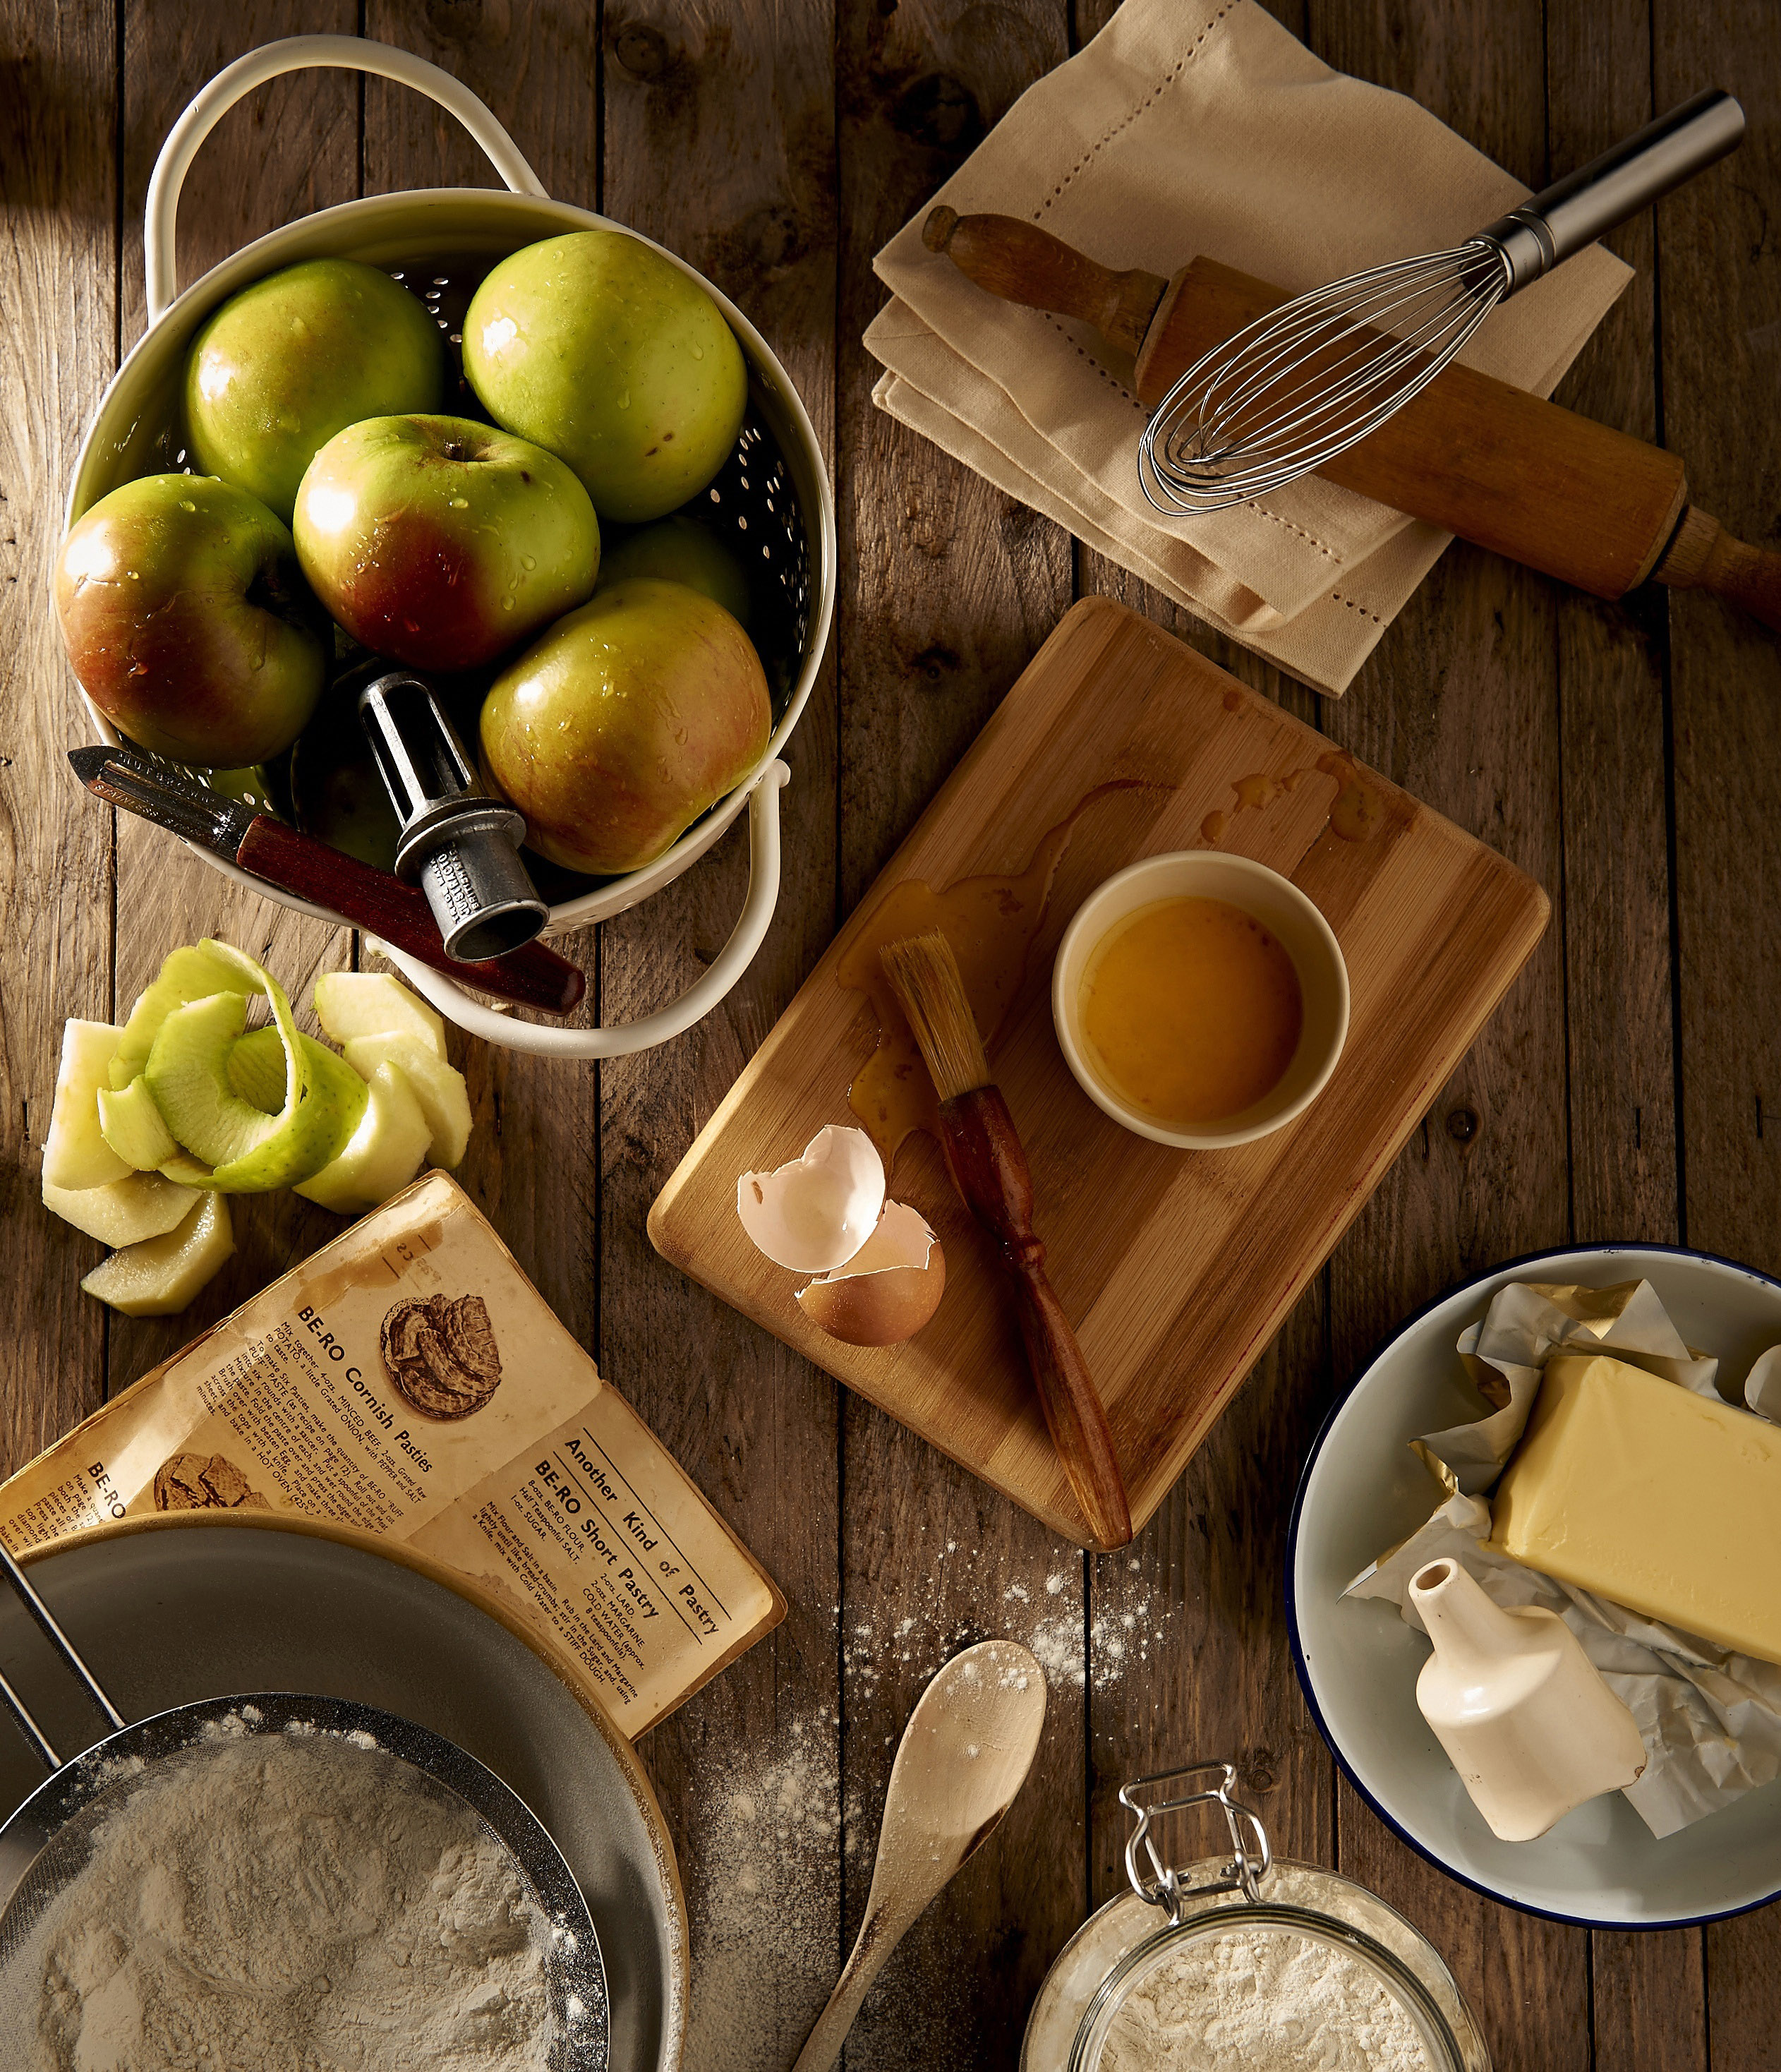 Best Apples For Baking And Cooking: Apple Pie, Applesauce